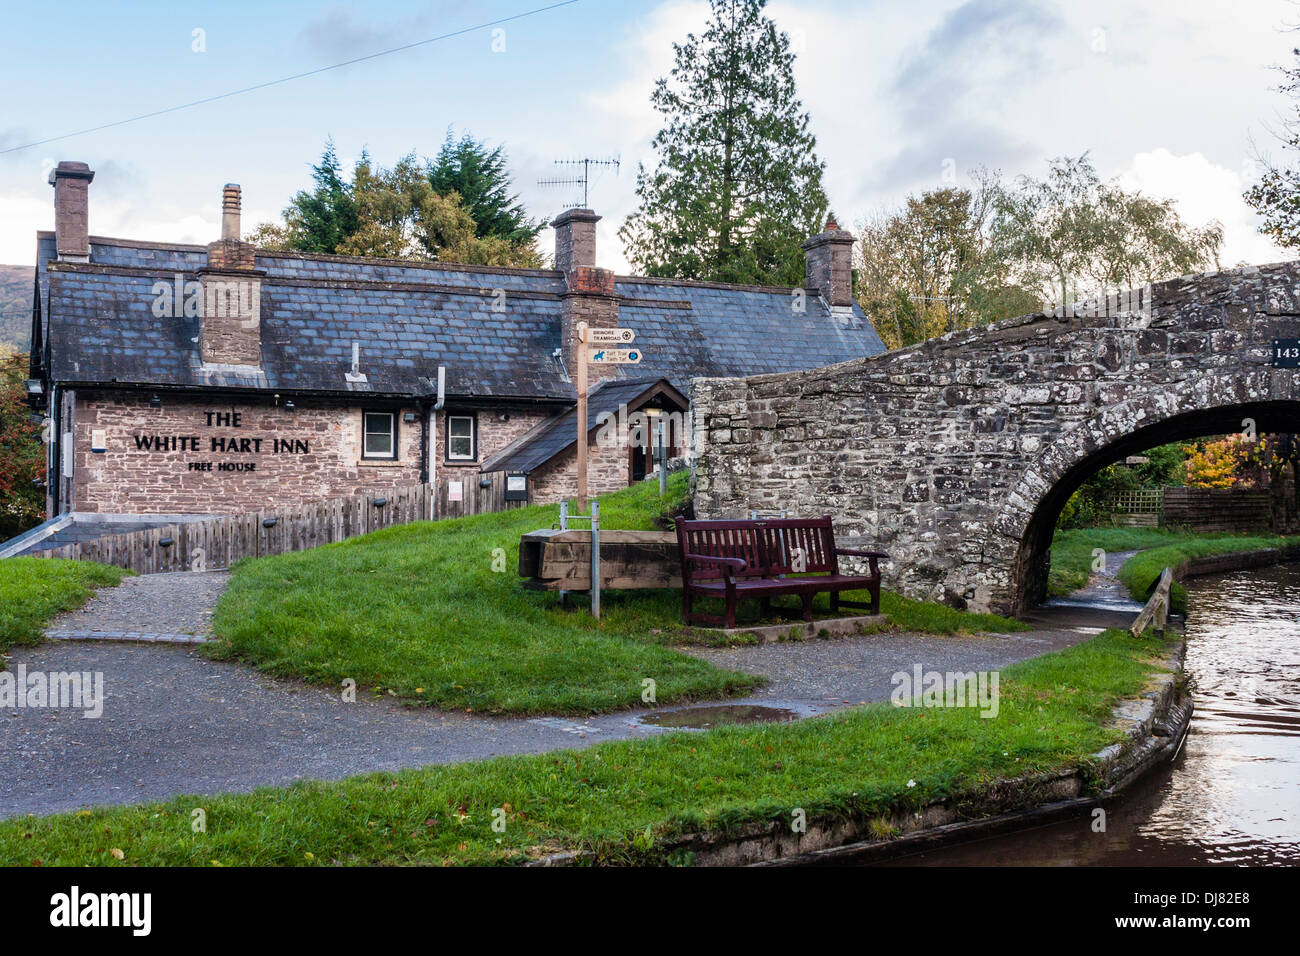 Bridge over the Monmouthshire and Brecon Canal at Talybont on Usk by the White Hart Inn. - Stock Image